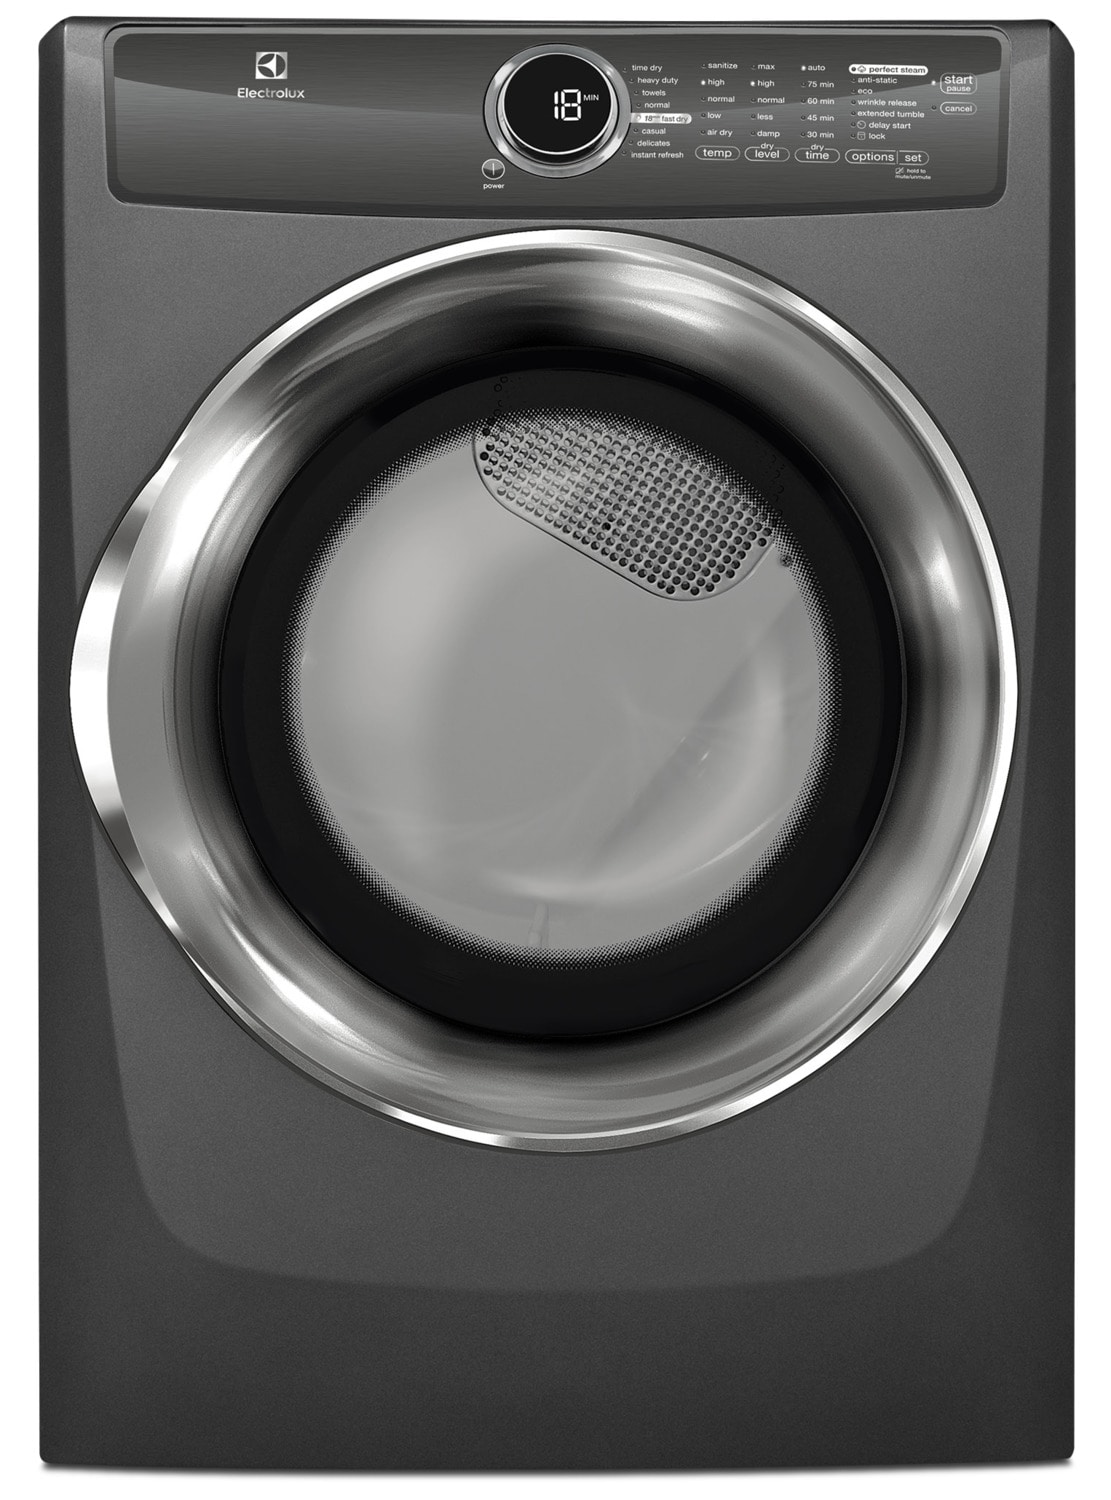 Electrolux Titanium Electric Dryer (8.0 Cu. Ft) - EFMC517STT